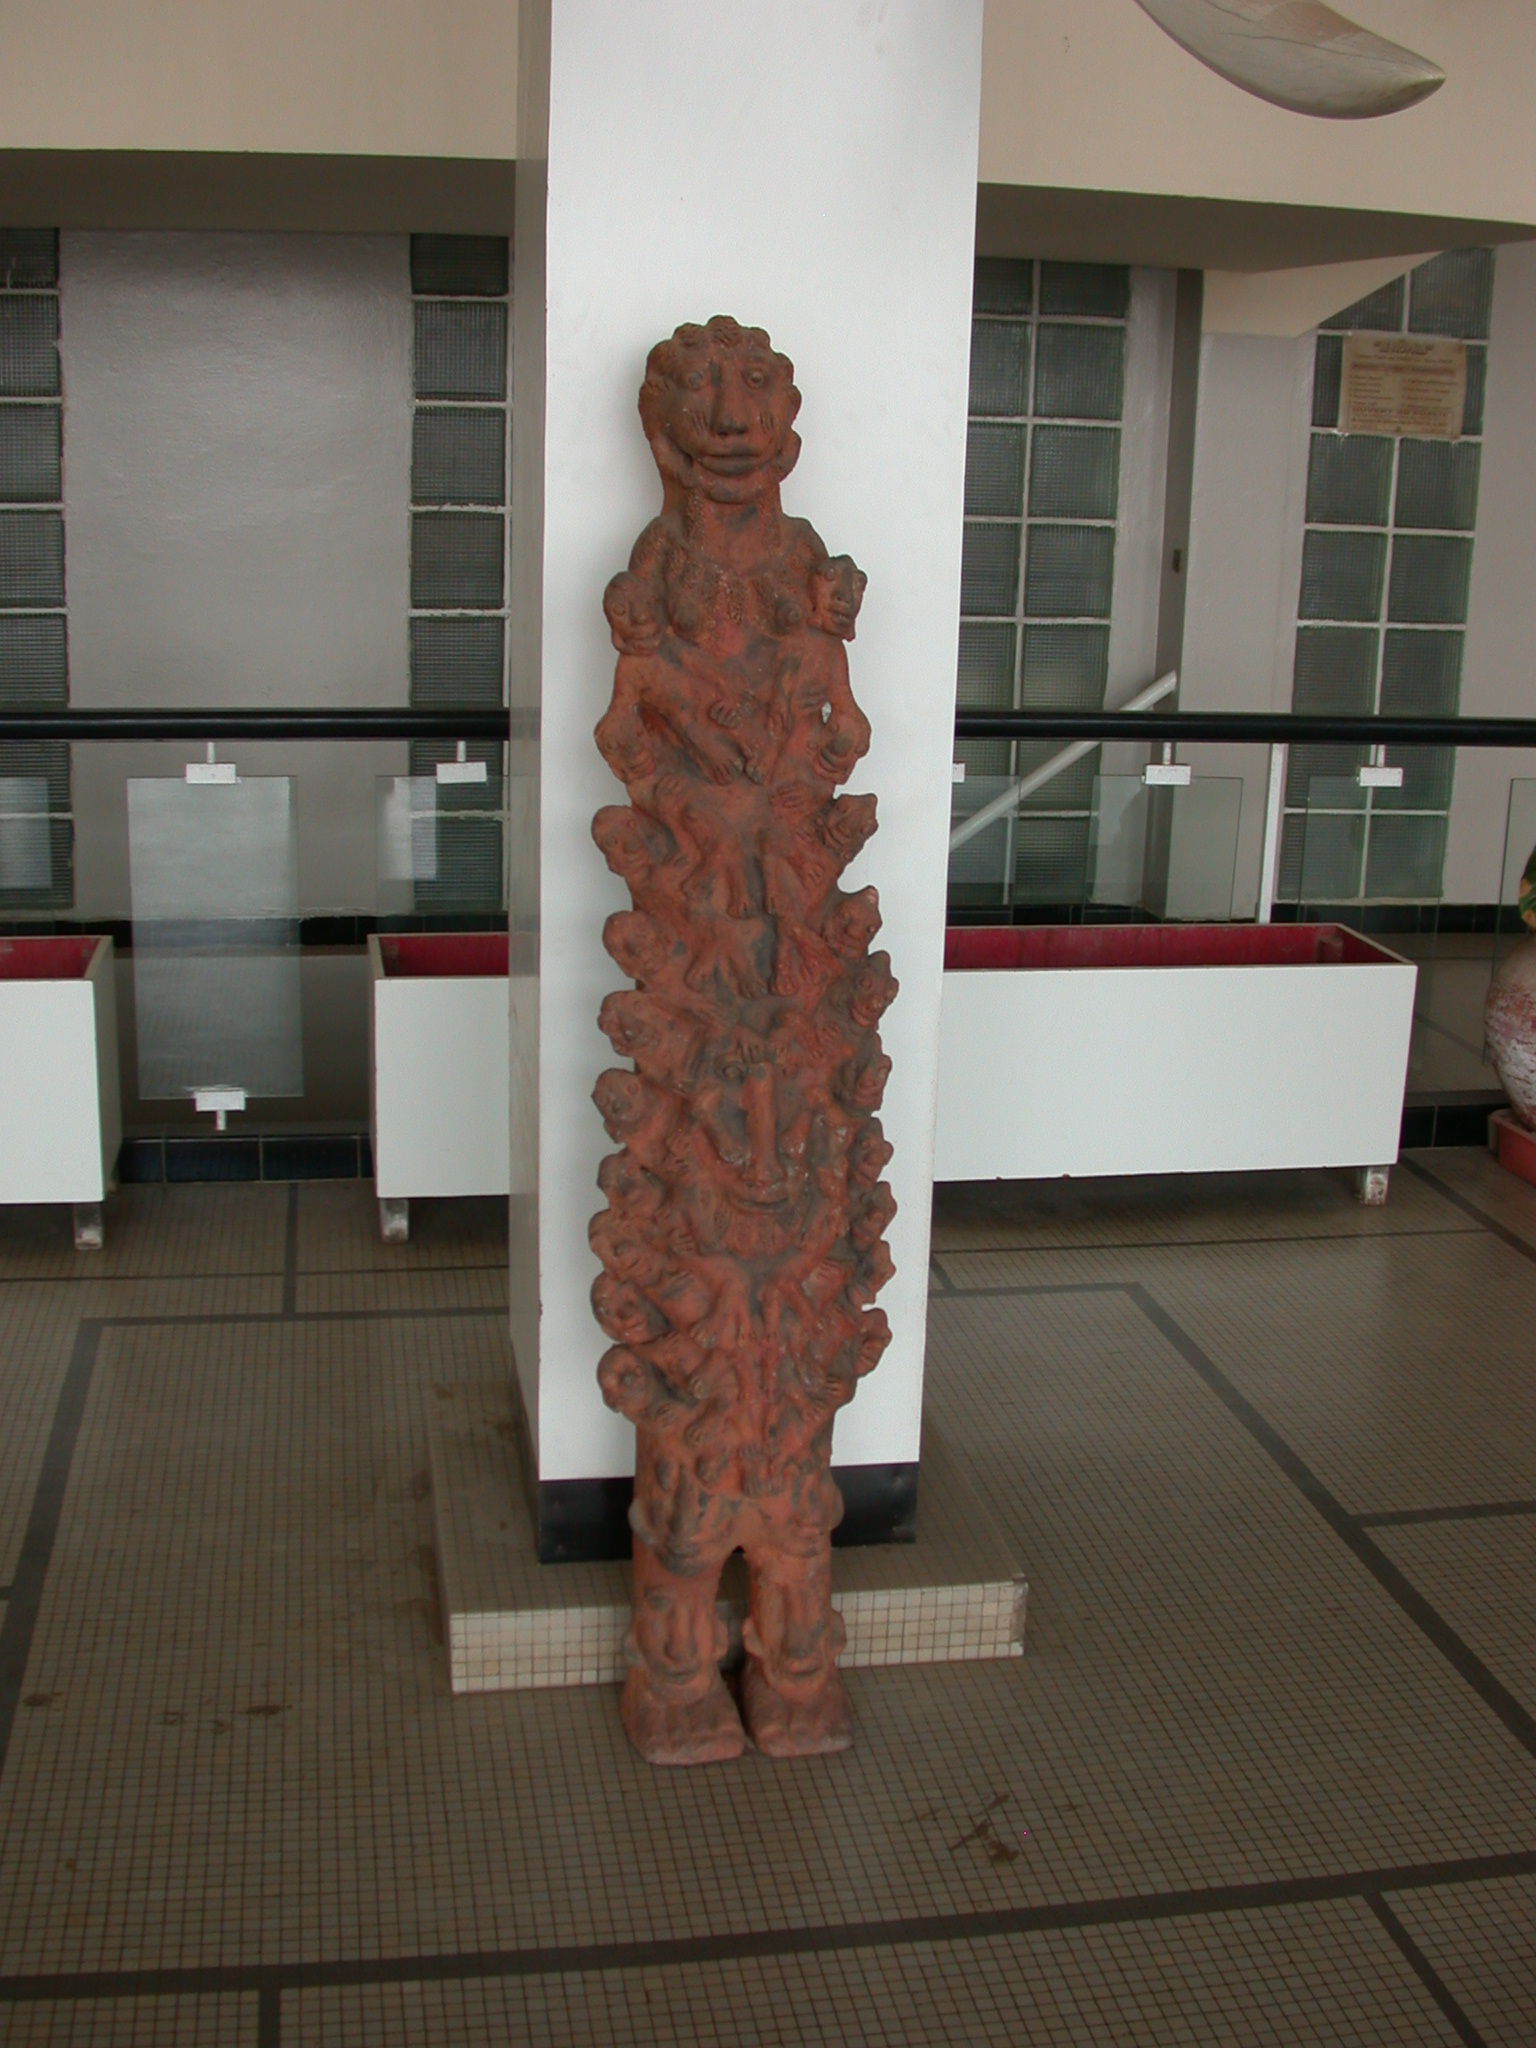 Sculpture in Entrance Hall of Institut Fondamental de l Afrique Noire, IFAN, Dakar, Senegal